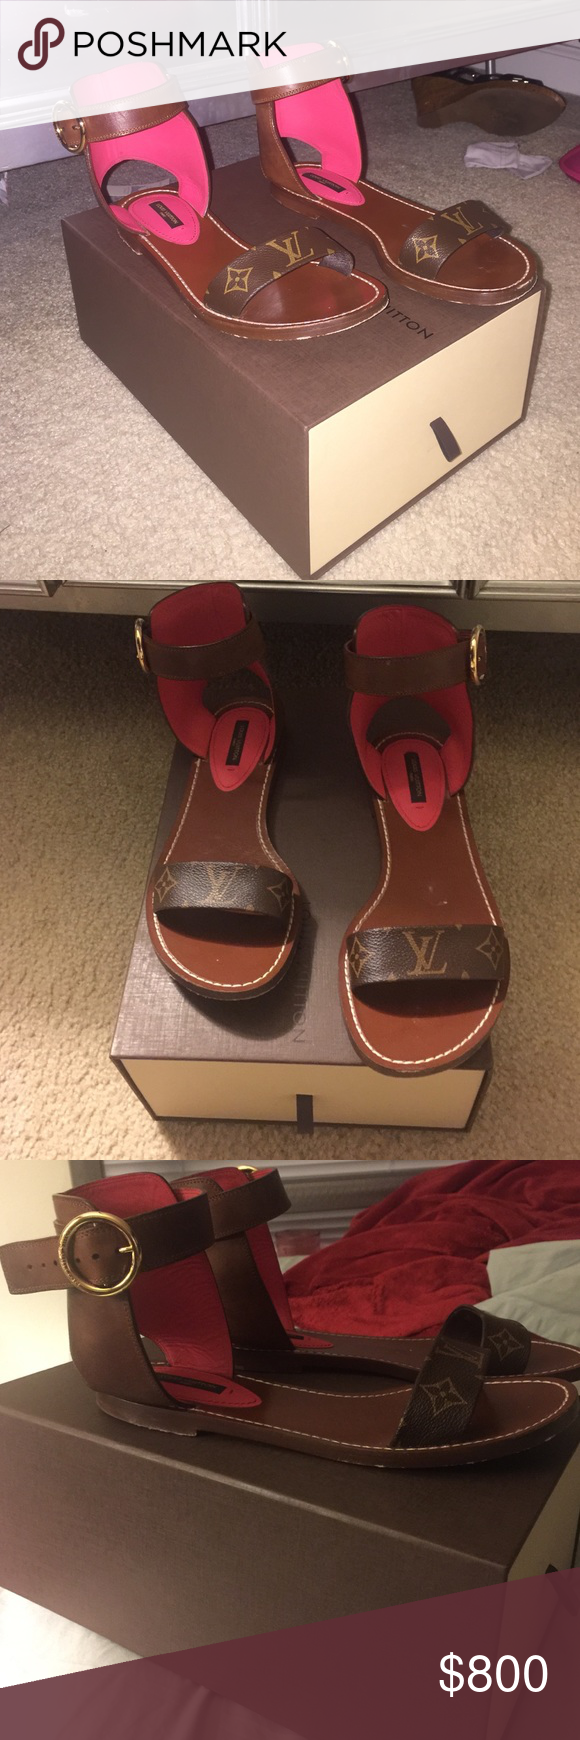 5caed7c334e262 Louis Vuitton Monogram Sandals Used but great condition 2016 Louis Vuitton  monogram sandals with box... will only negotiate reasonable offers!